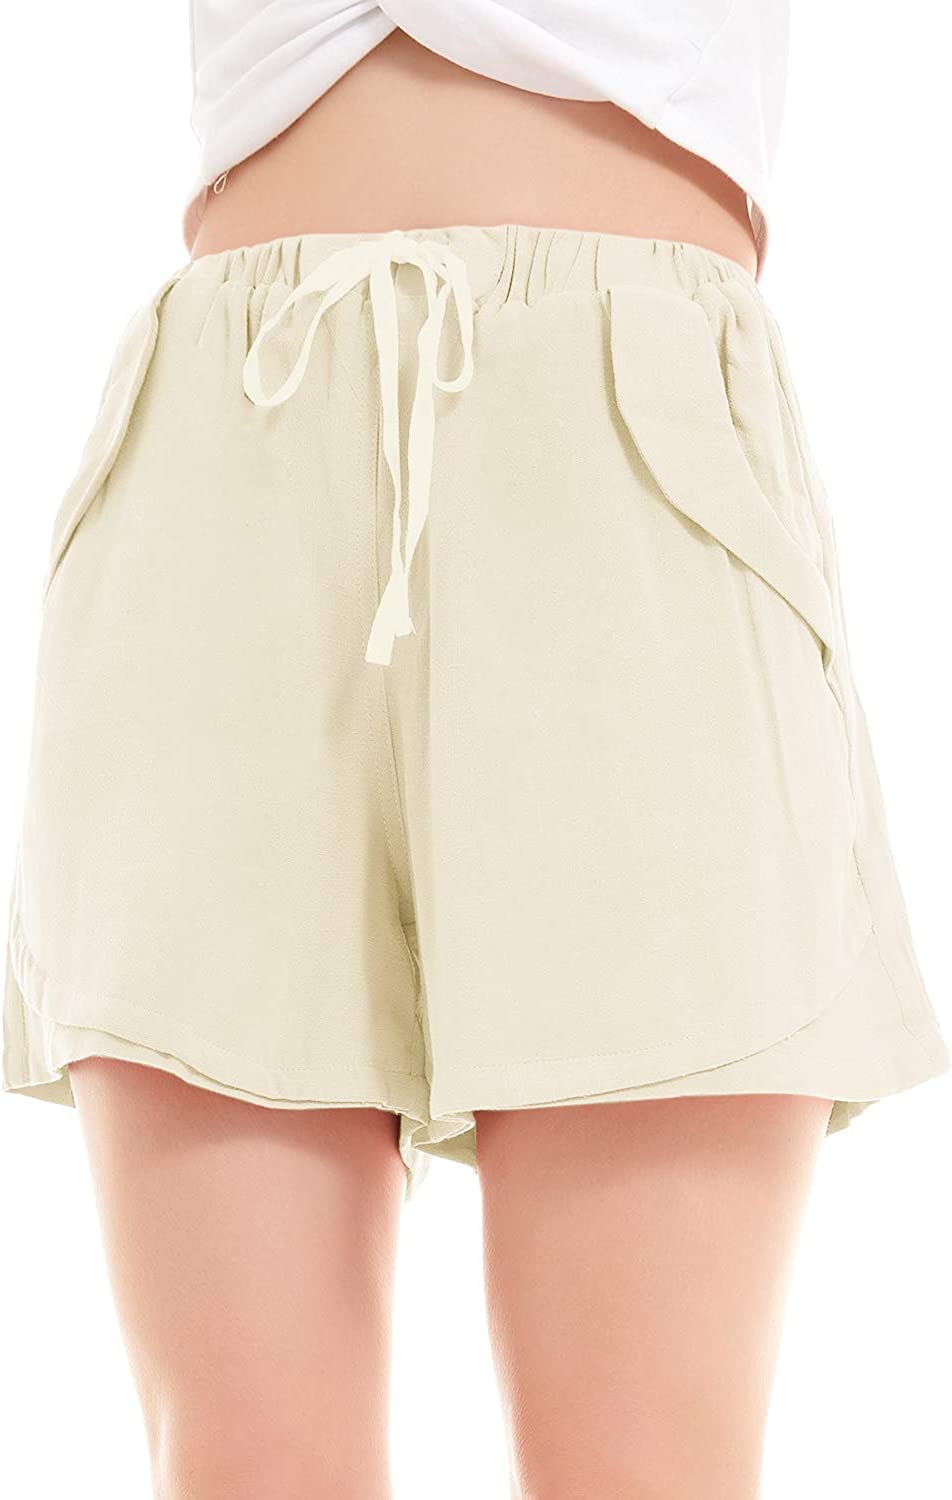 SMENG Womens Solid Colour Drawstring Shorts with Pockets Loose Casual Pants